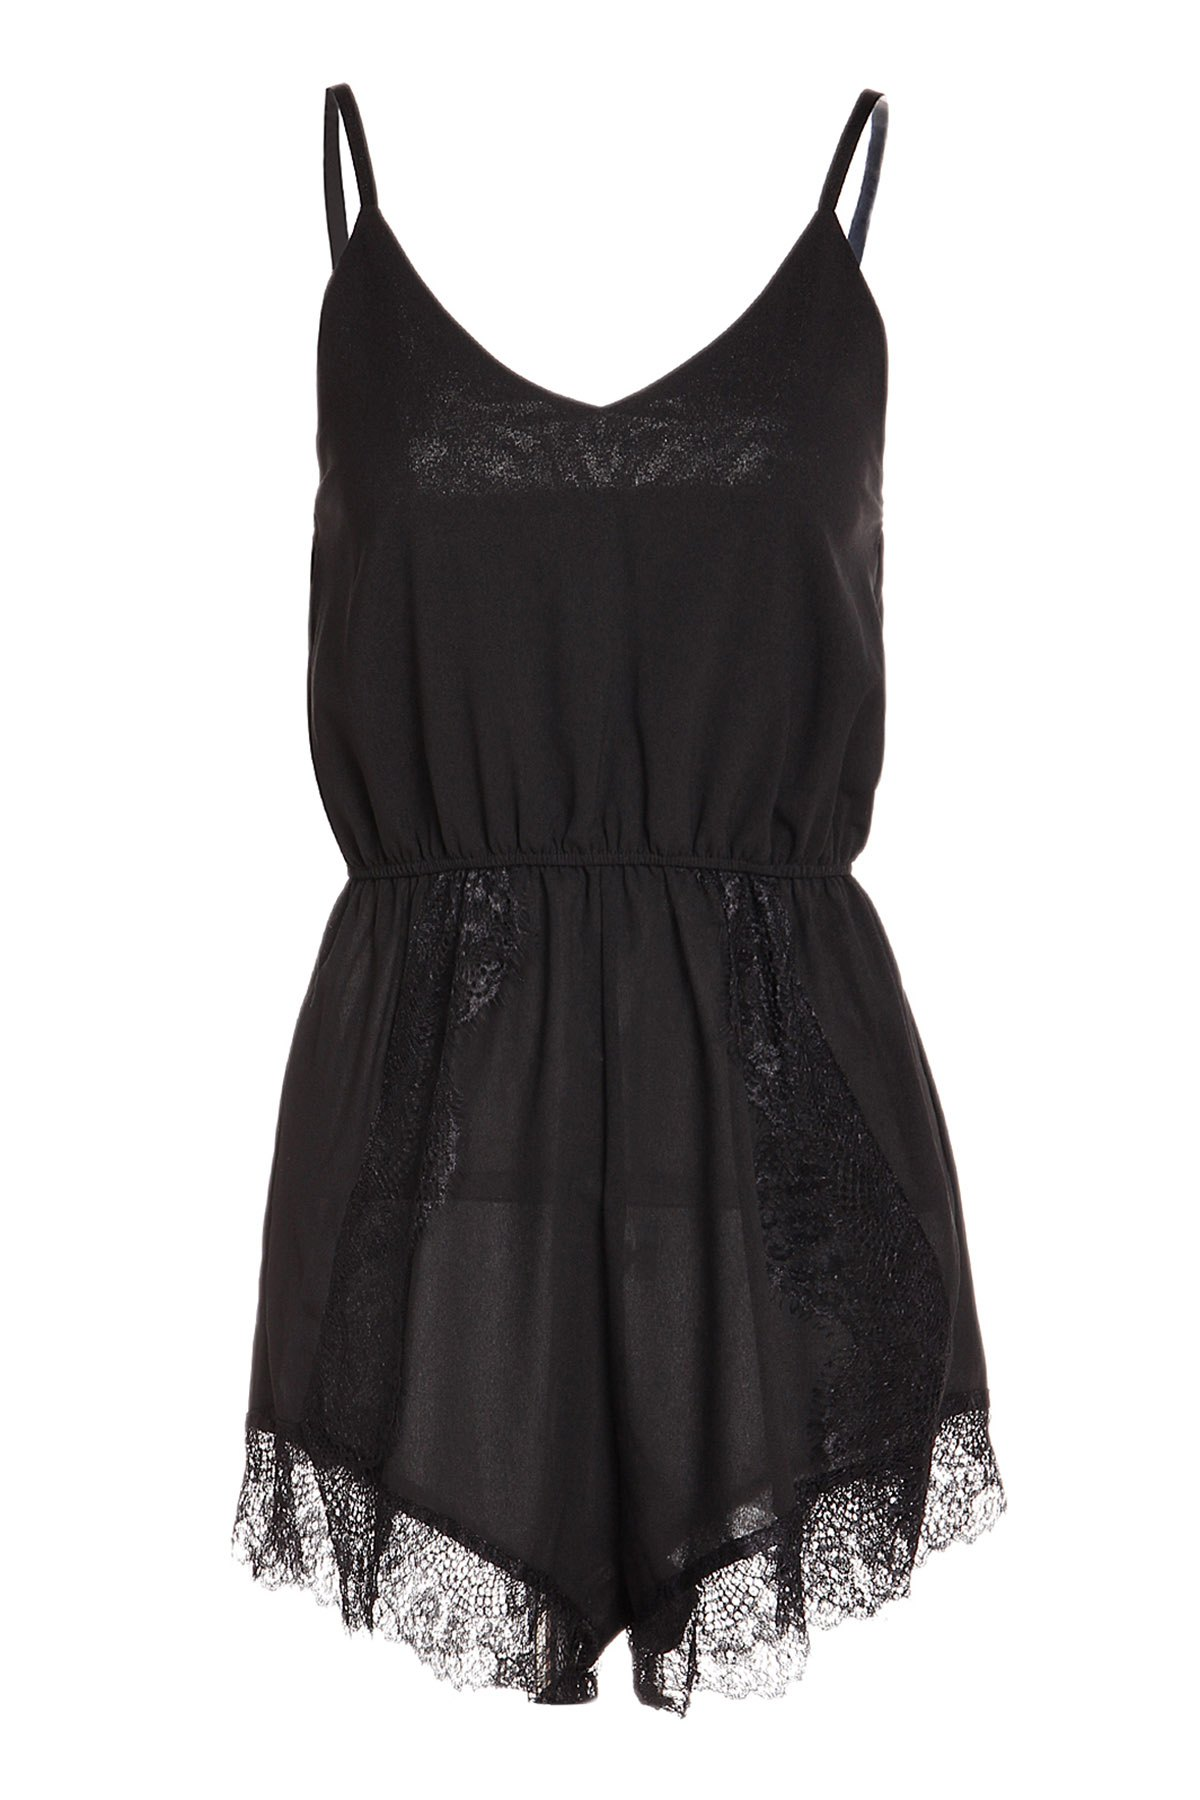 Stylish Sleeveless Spaghetti Strap Lace Embellished Women's Romper - BLACK L